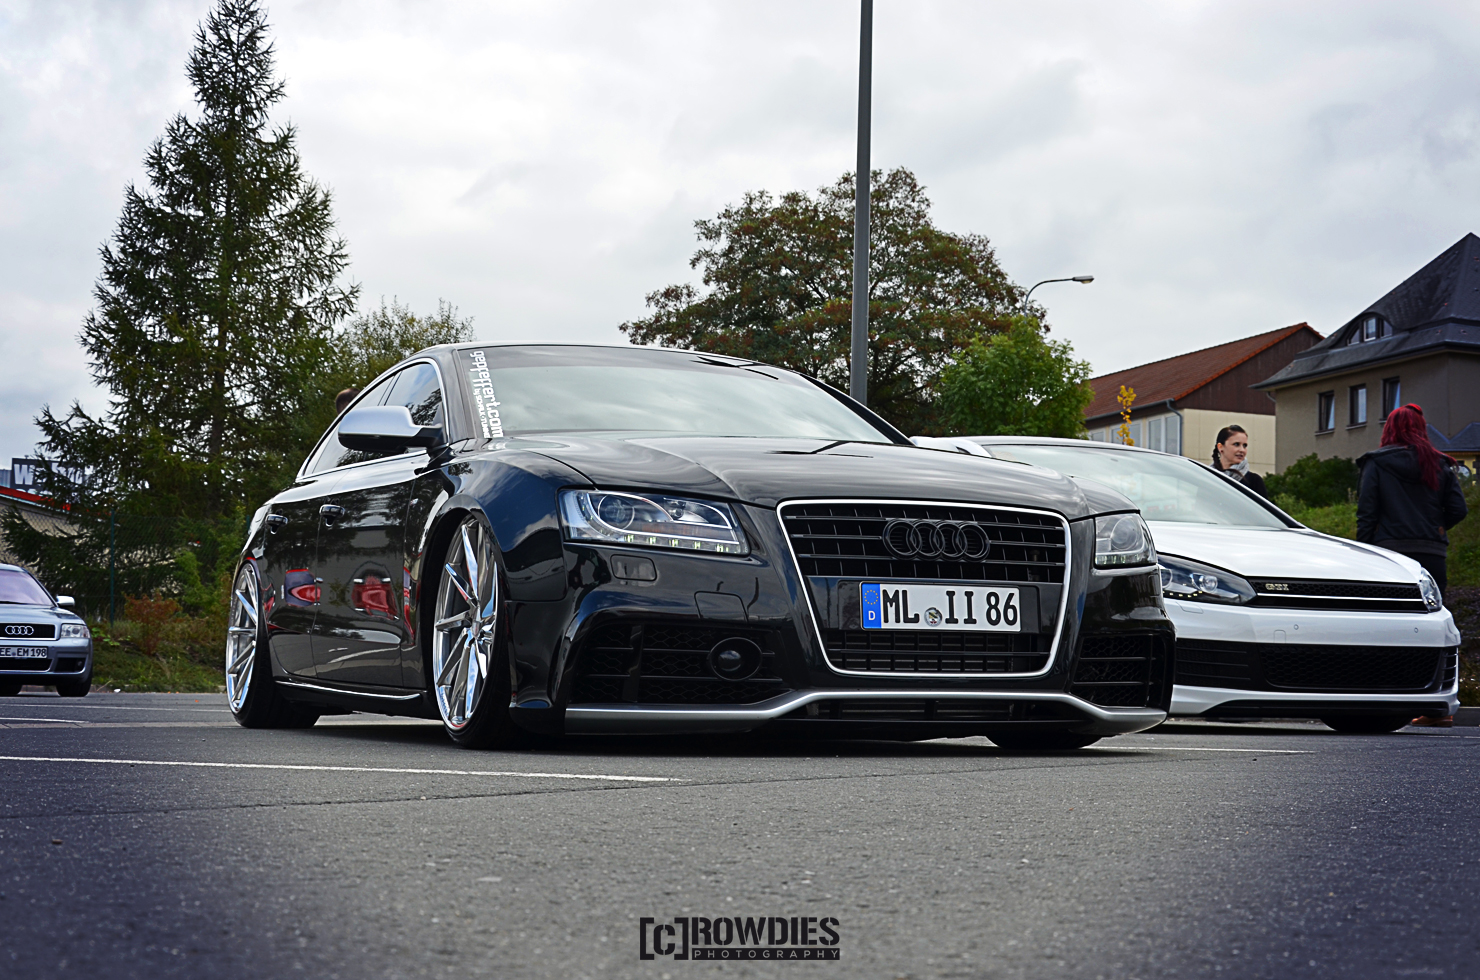 Team Eddy's Season End 2015 - Audi A5 S5 Schwarz